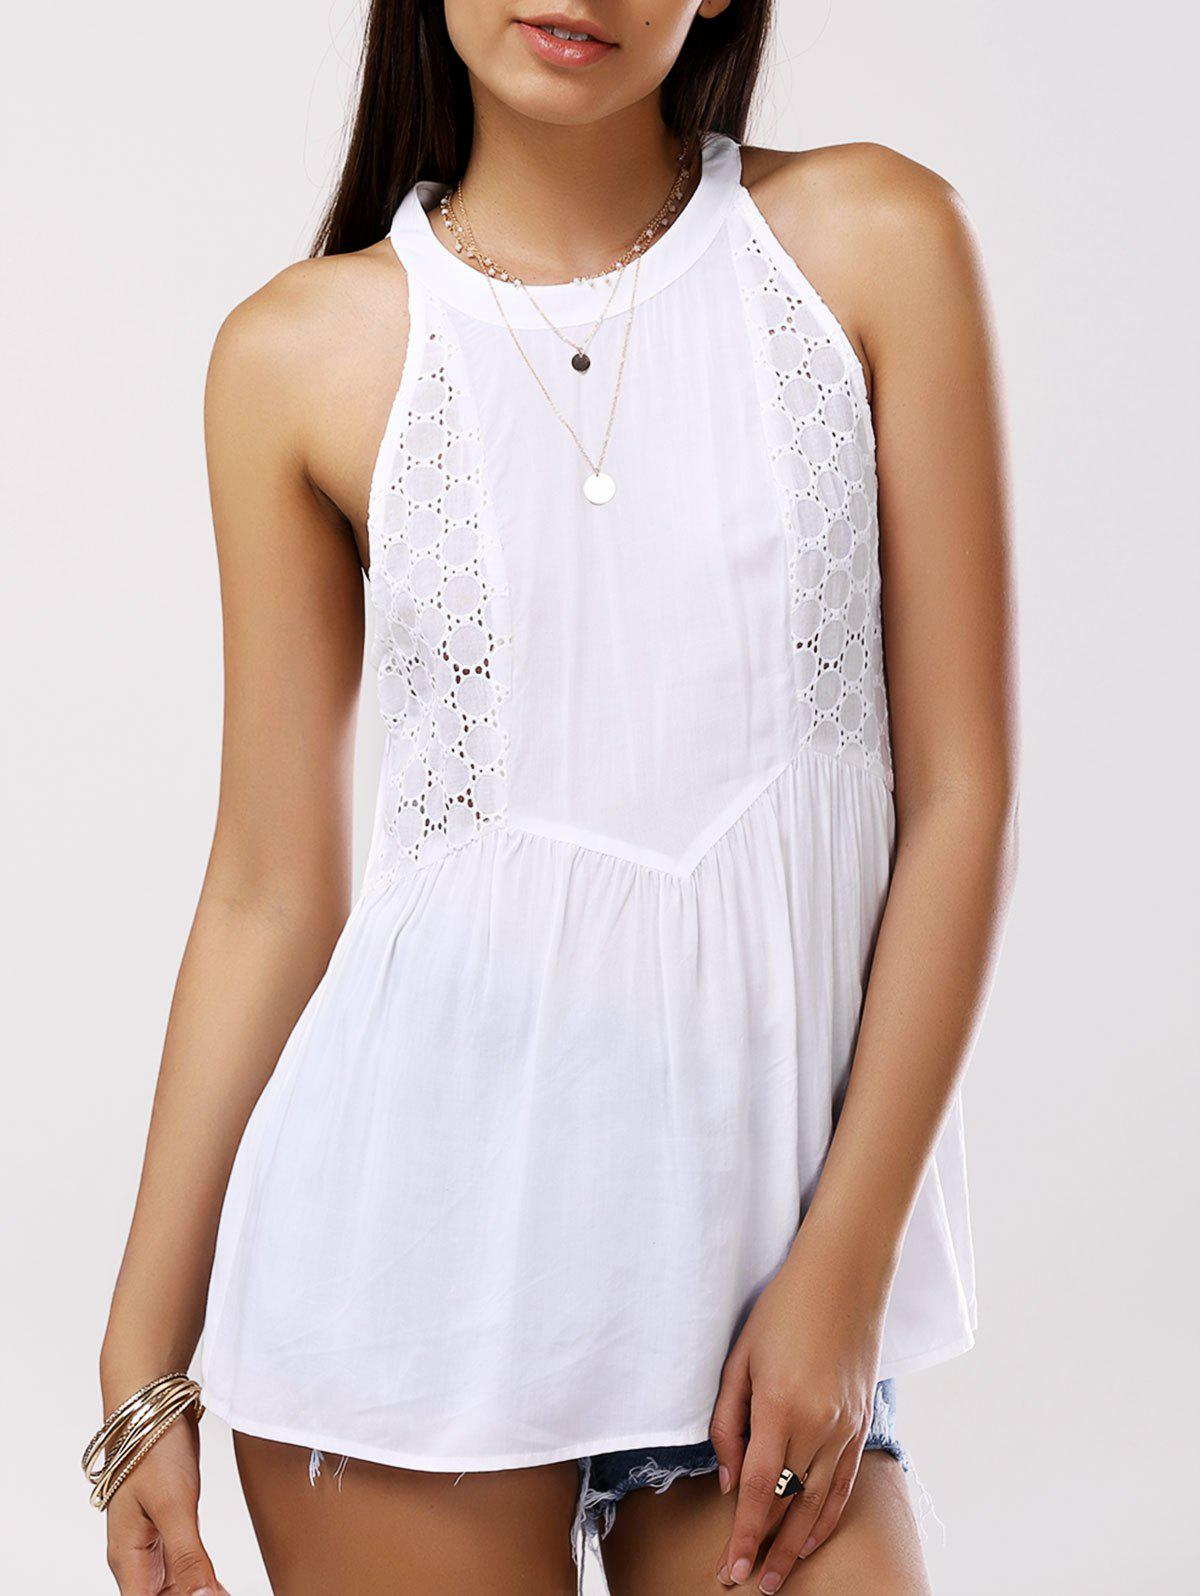 Sweet Round Collar Splice Cut-Out Sleeveless Blouse For Women